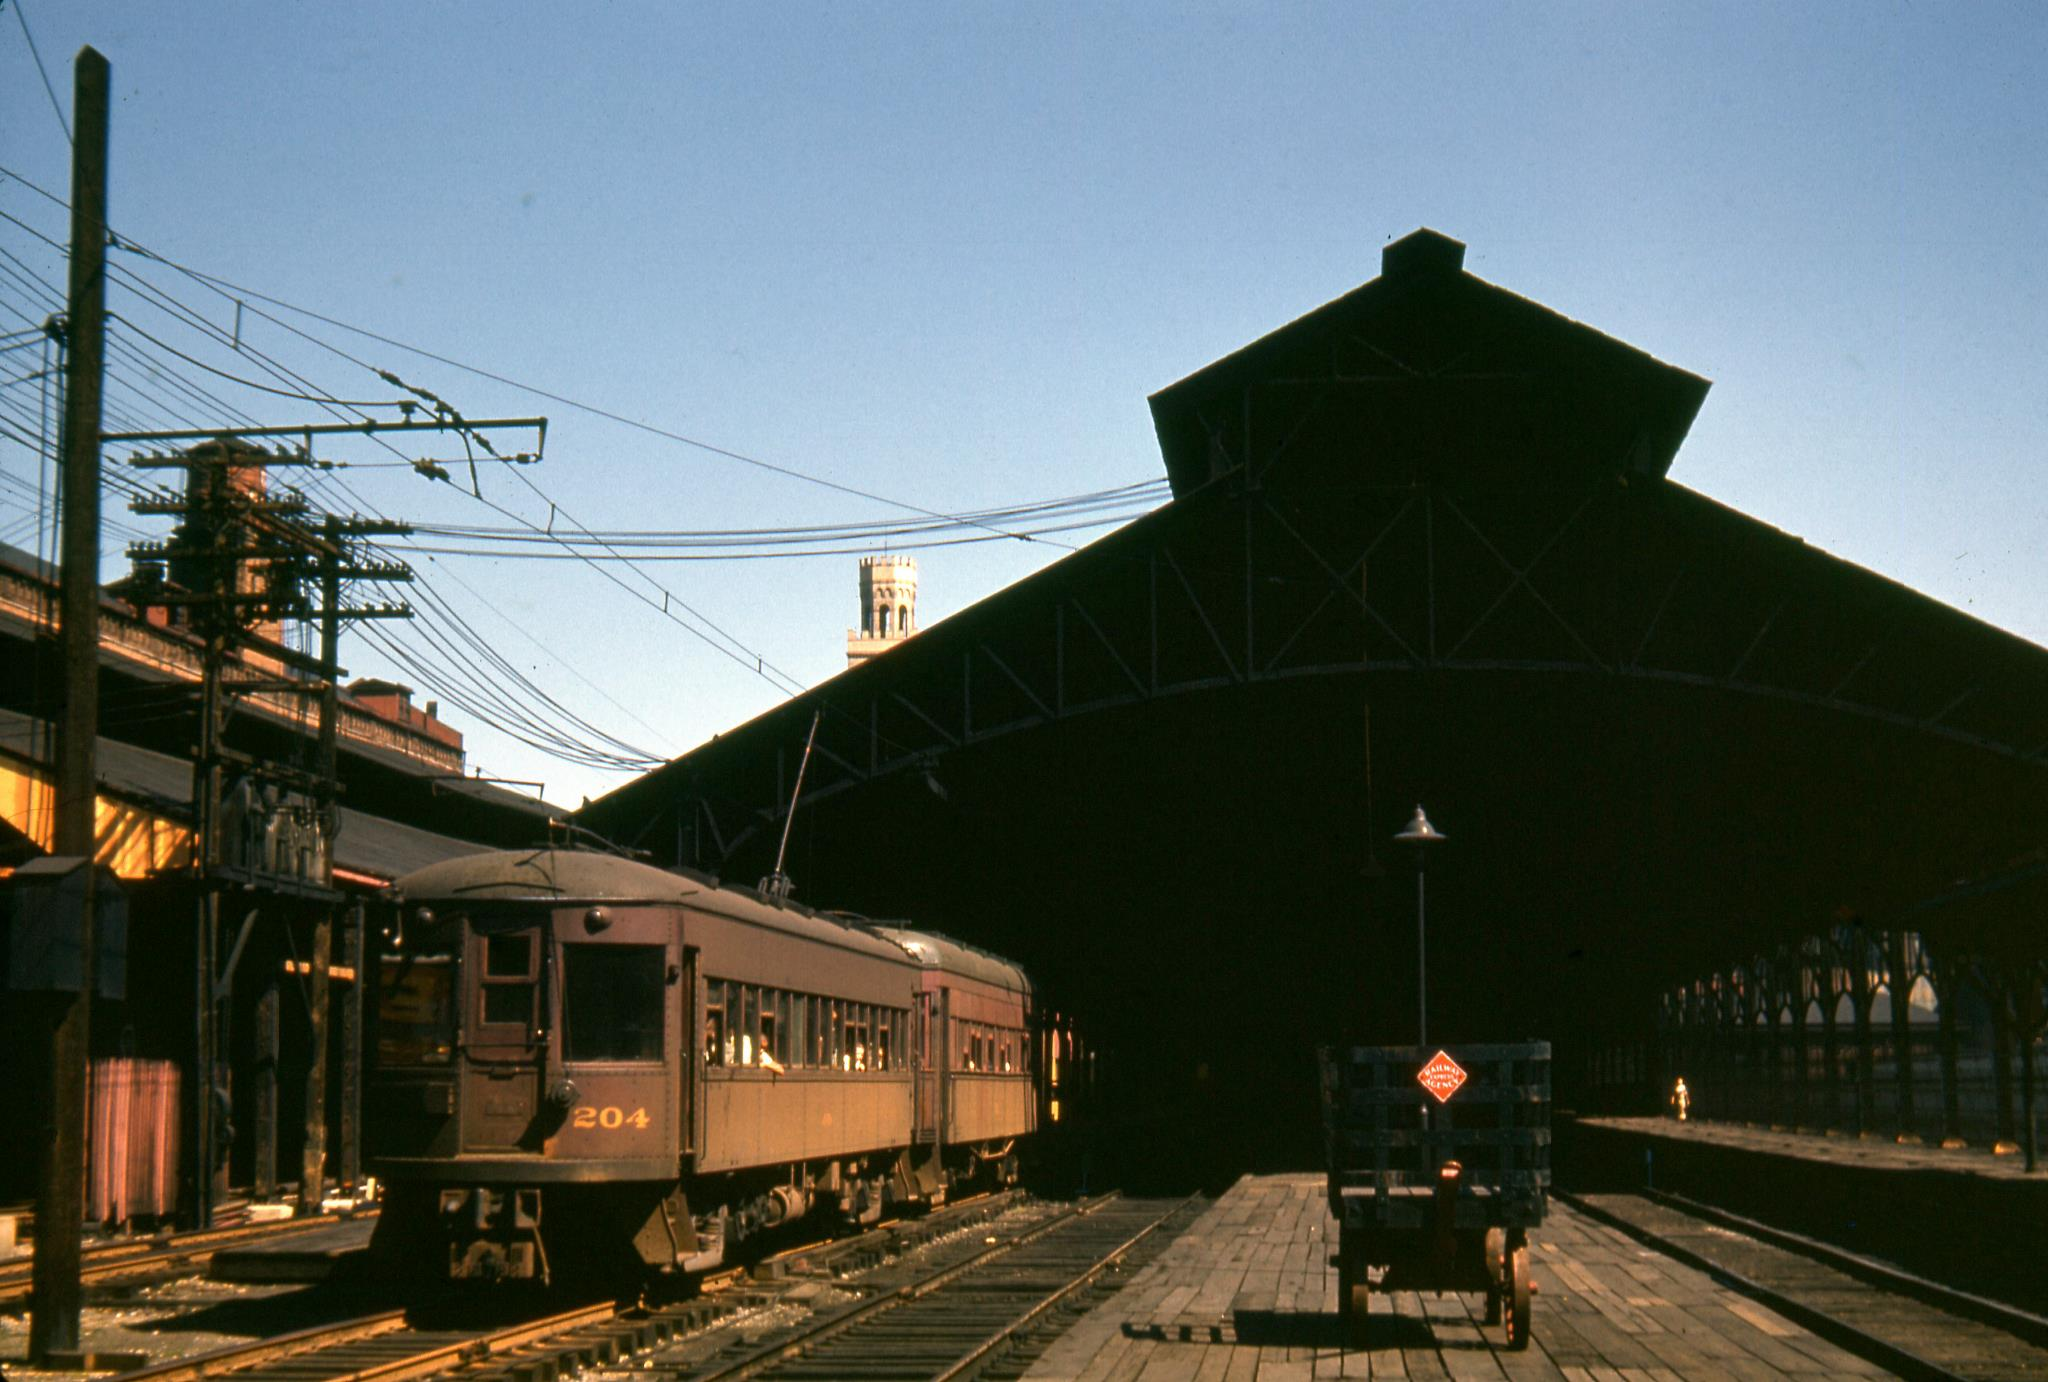 Baltimore & Annapolis Railroad Car #204 departing Camden Station. Baltimore, Maryland Date: 1940s. Source: Lee Rogers Collection.